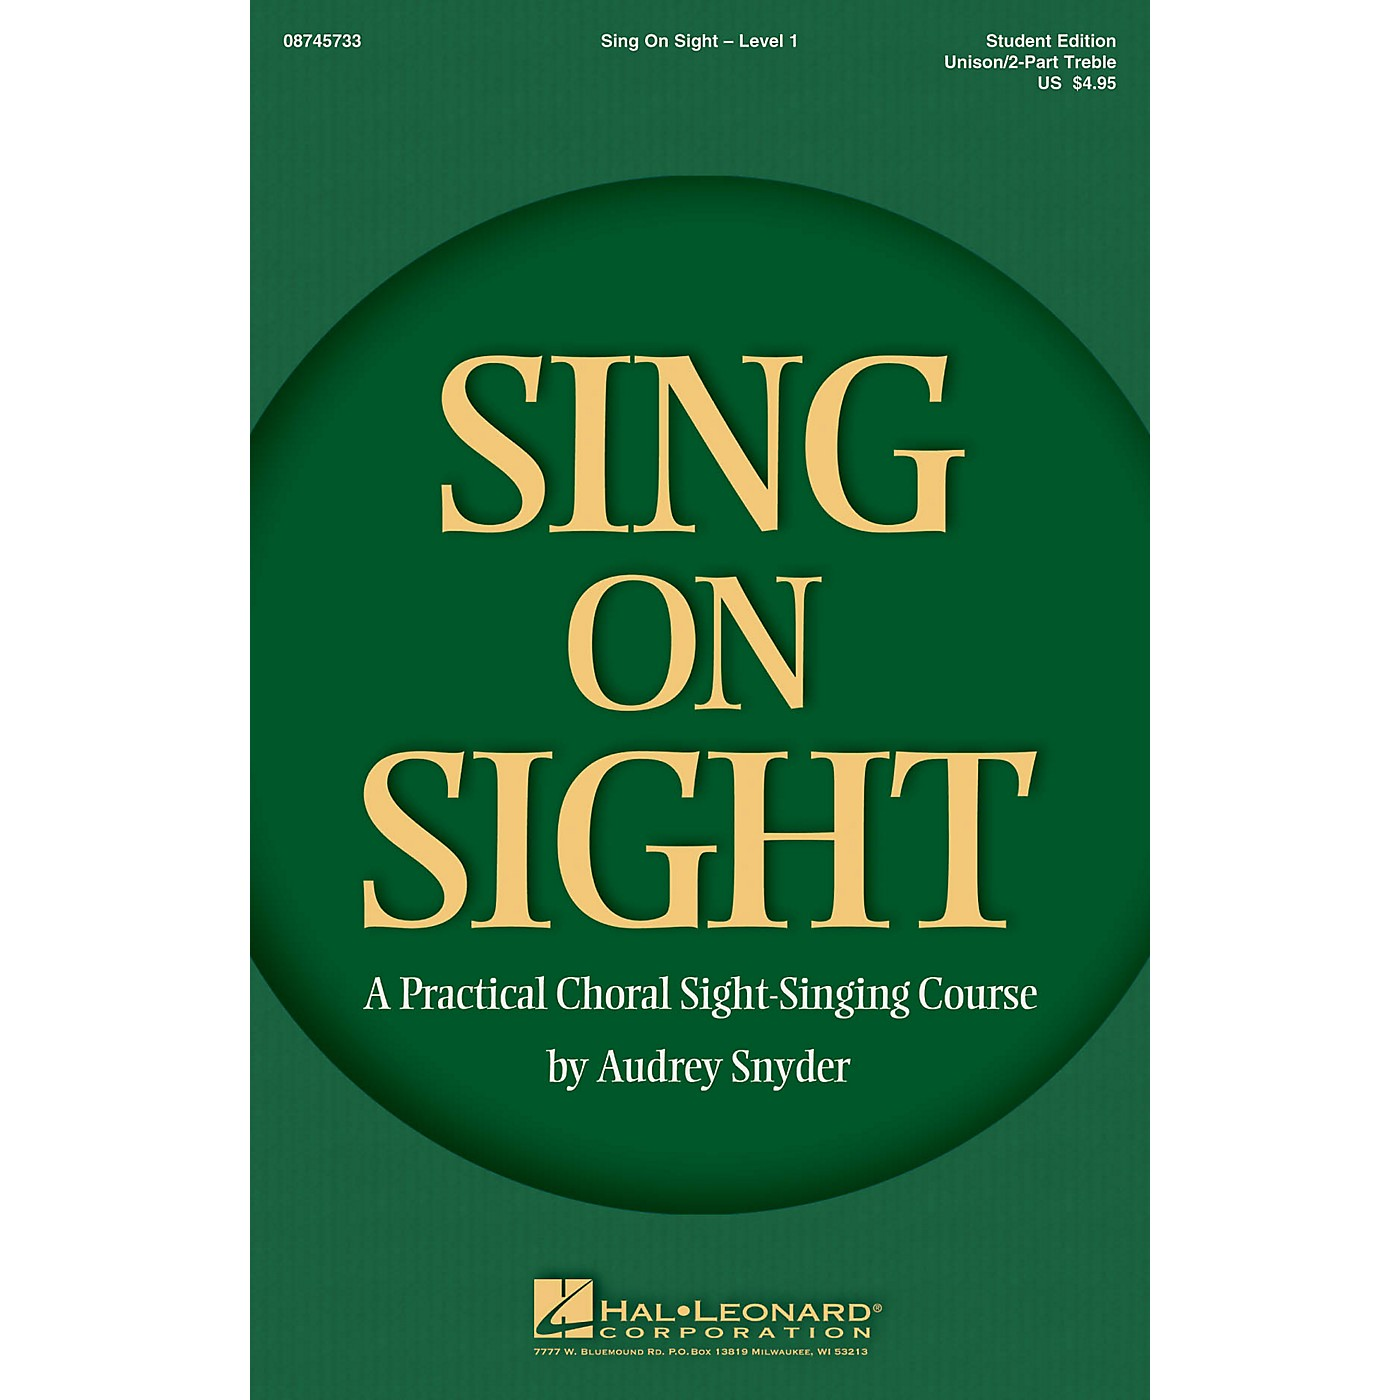 Hal Leonard Sing on Sight (A Practical Choral Sight-Singing Course) Unison/2-Part Treble thumbnail